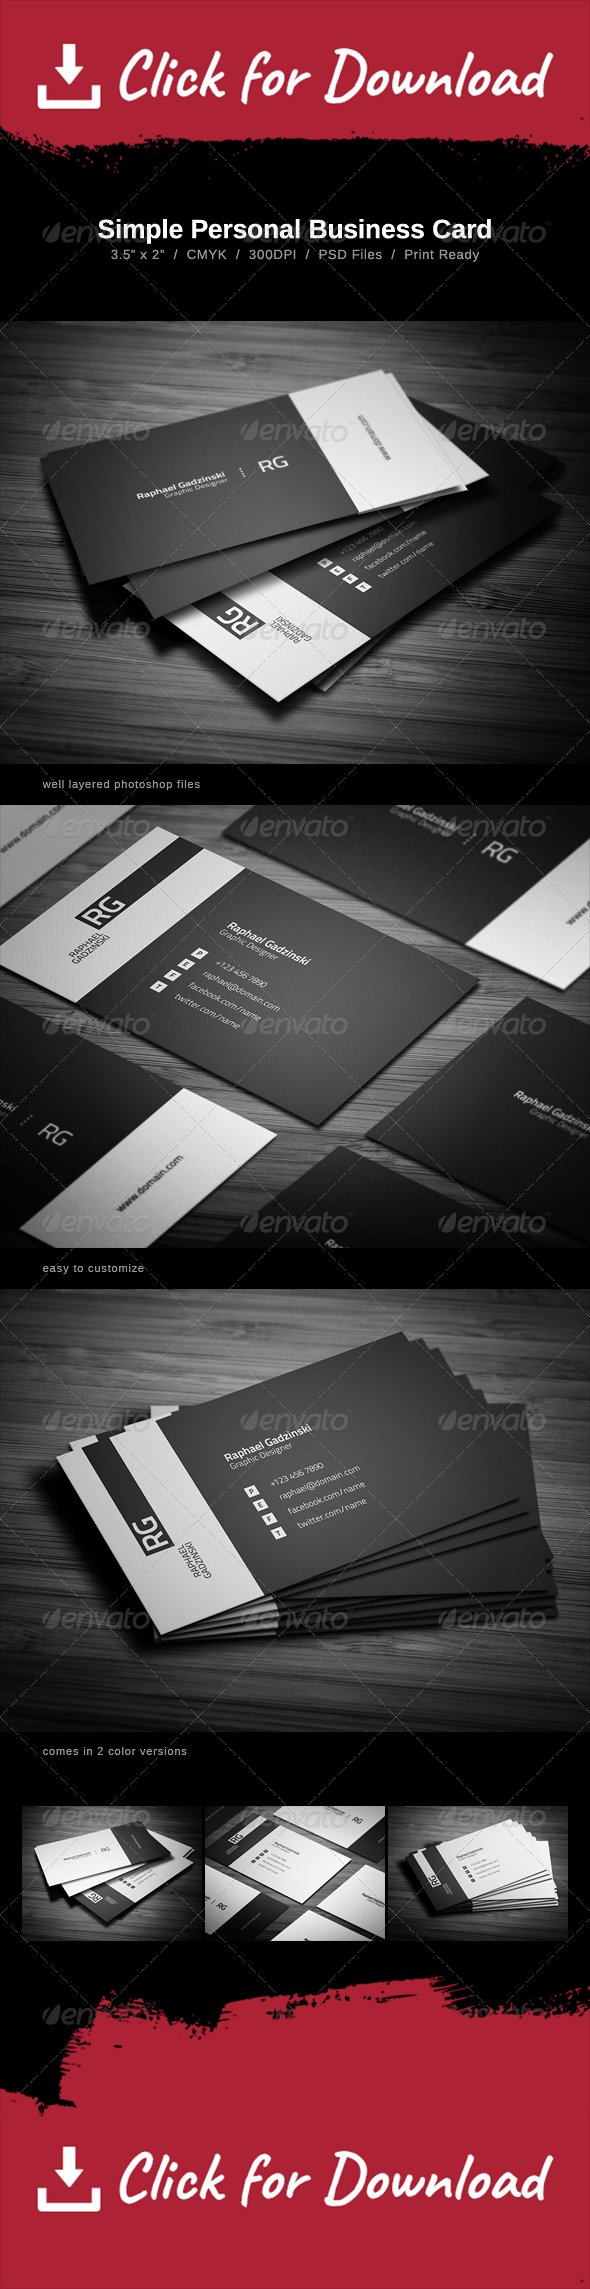 Simple business card simple business cards business cards and simple business card can be used for almost any kind of company or even personal use the card comes in one color version reheart Gallery